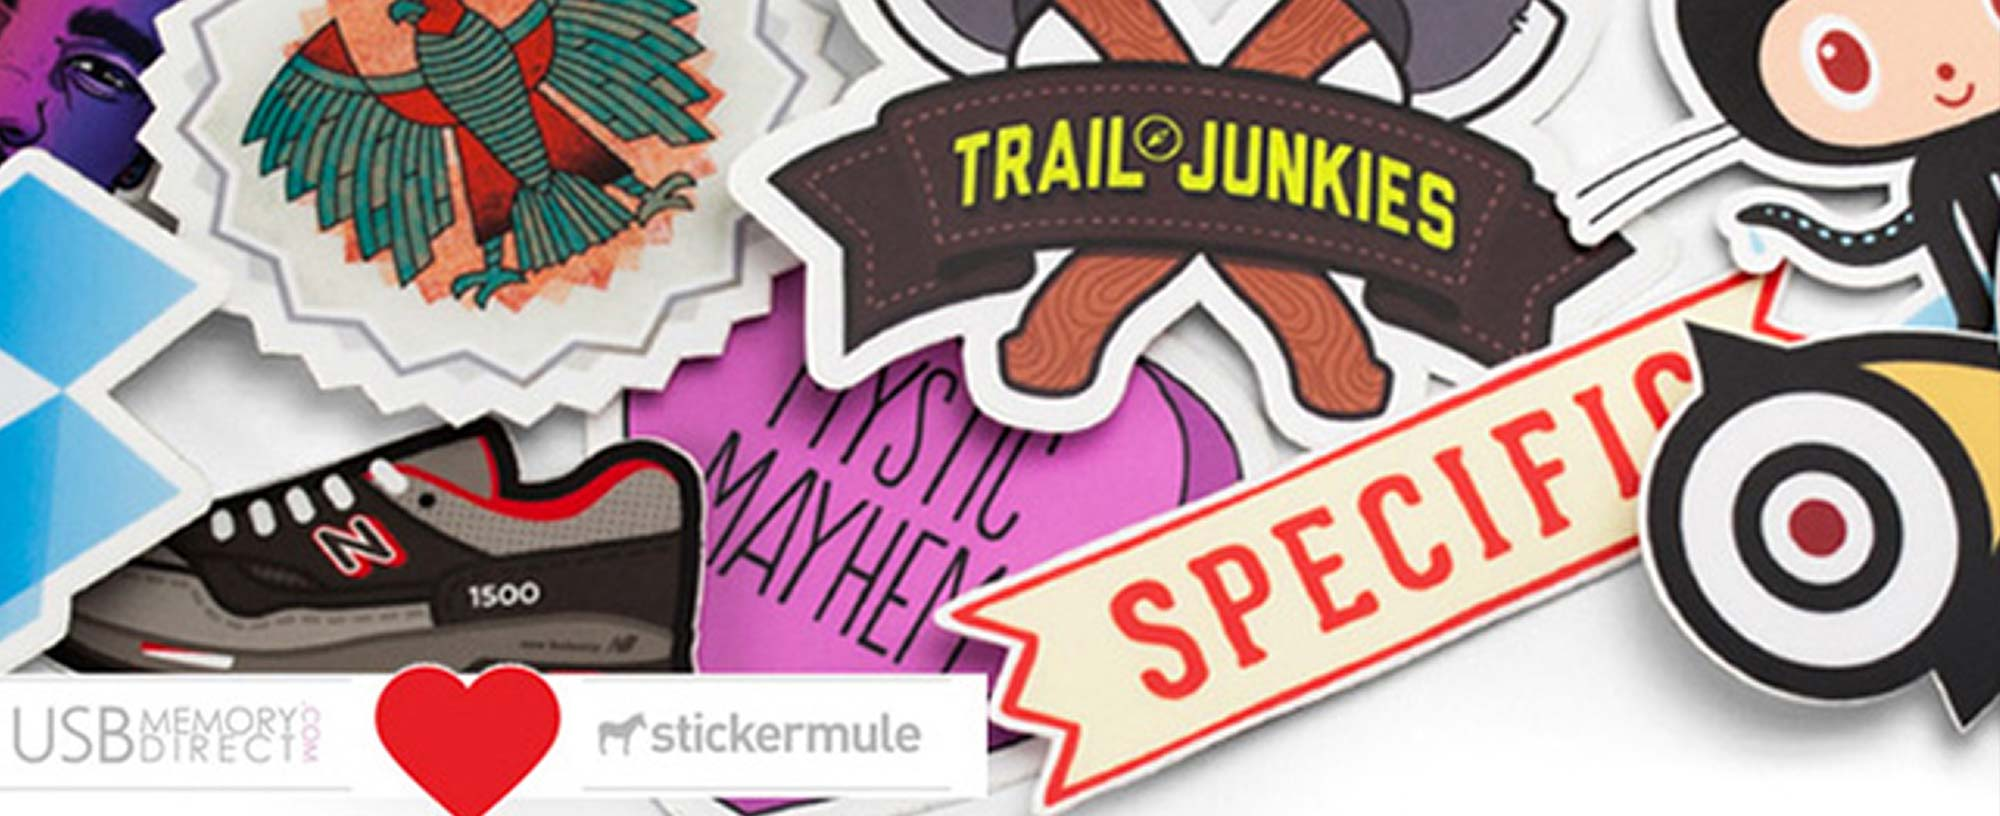 stickermulebanner(2)